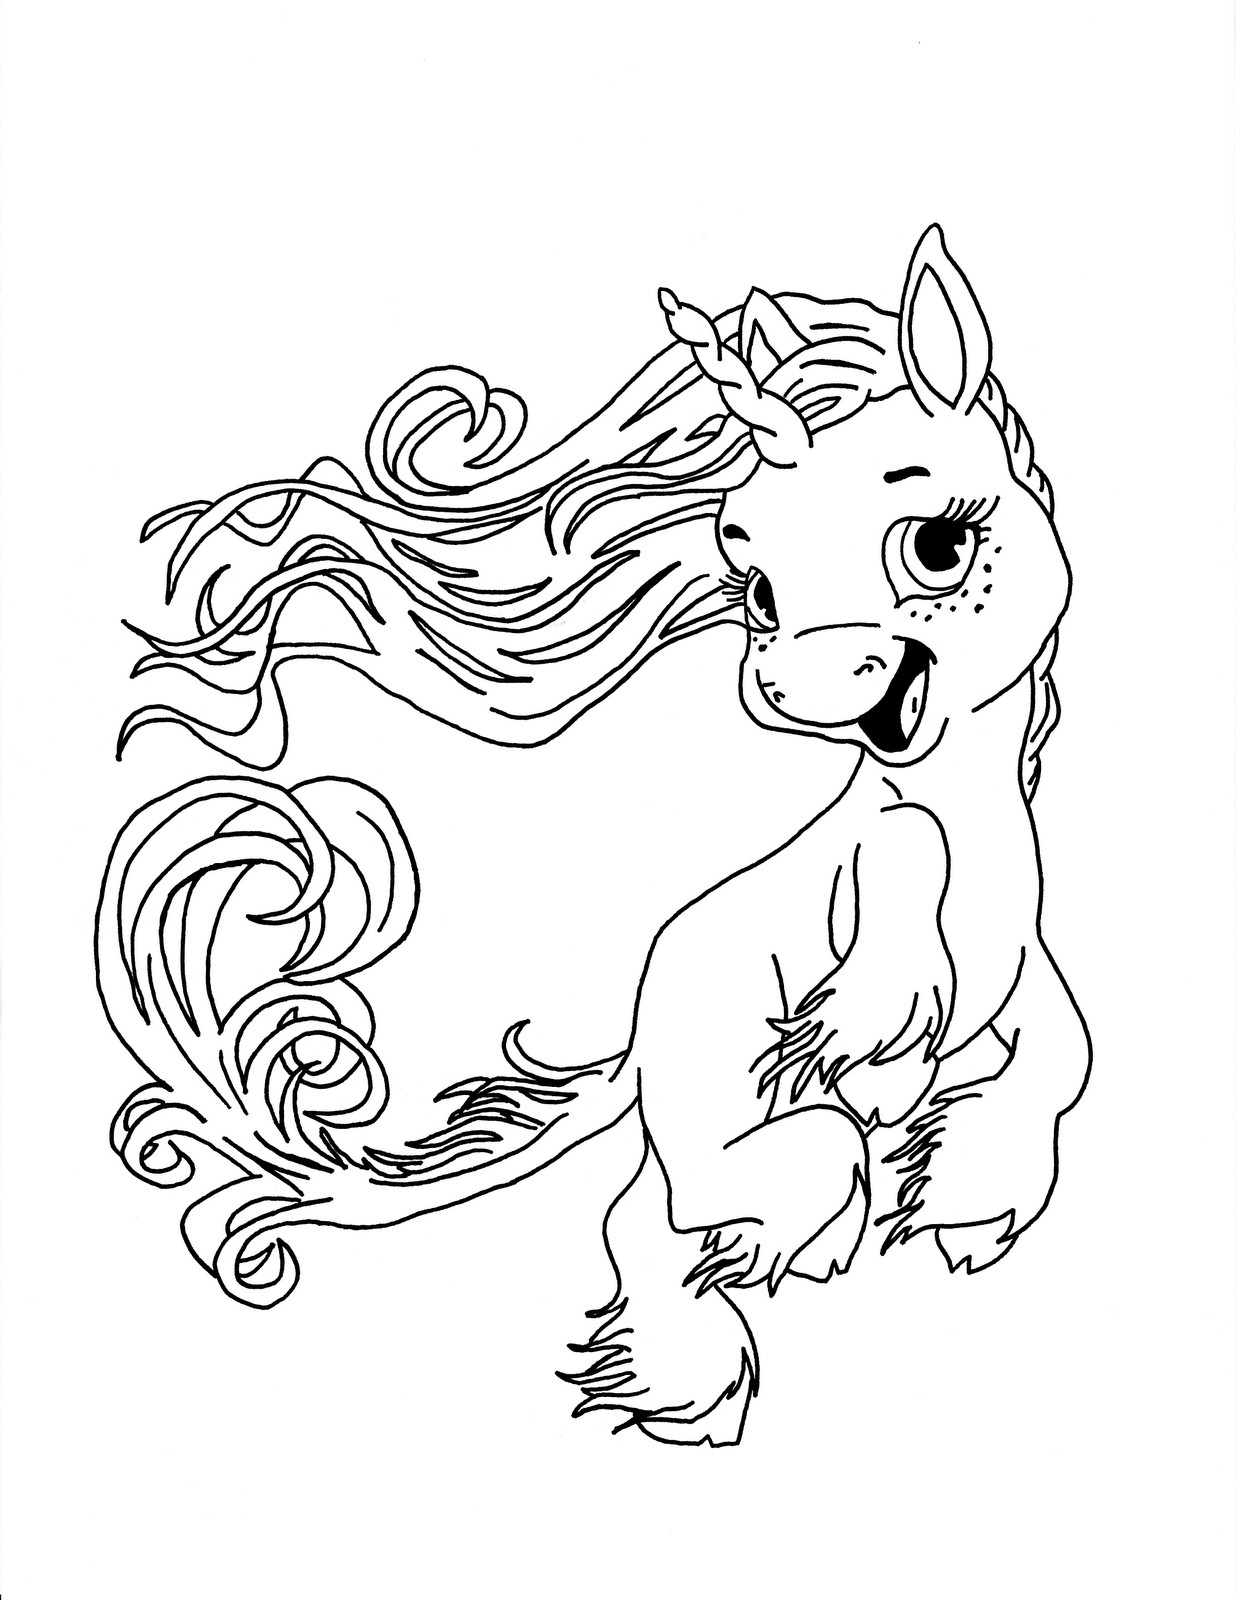 Printable Coloring Pages For Kids Unicorn  Unicorn Coloring Pages coloringsuite